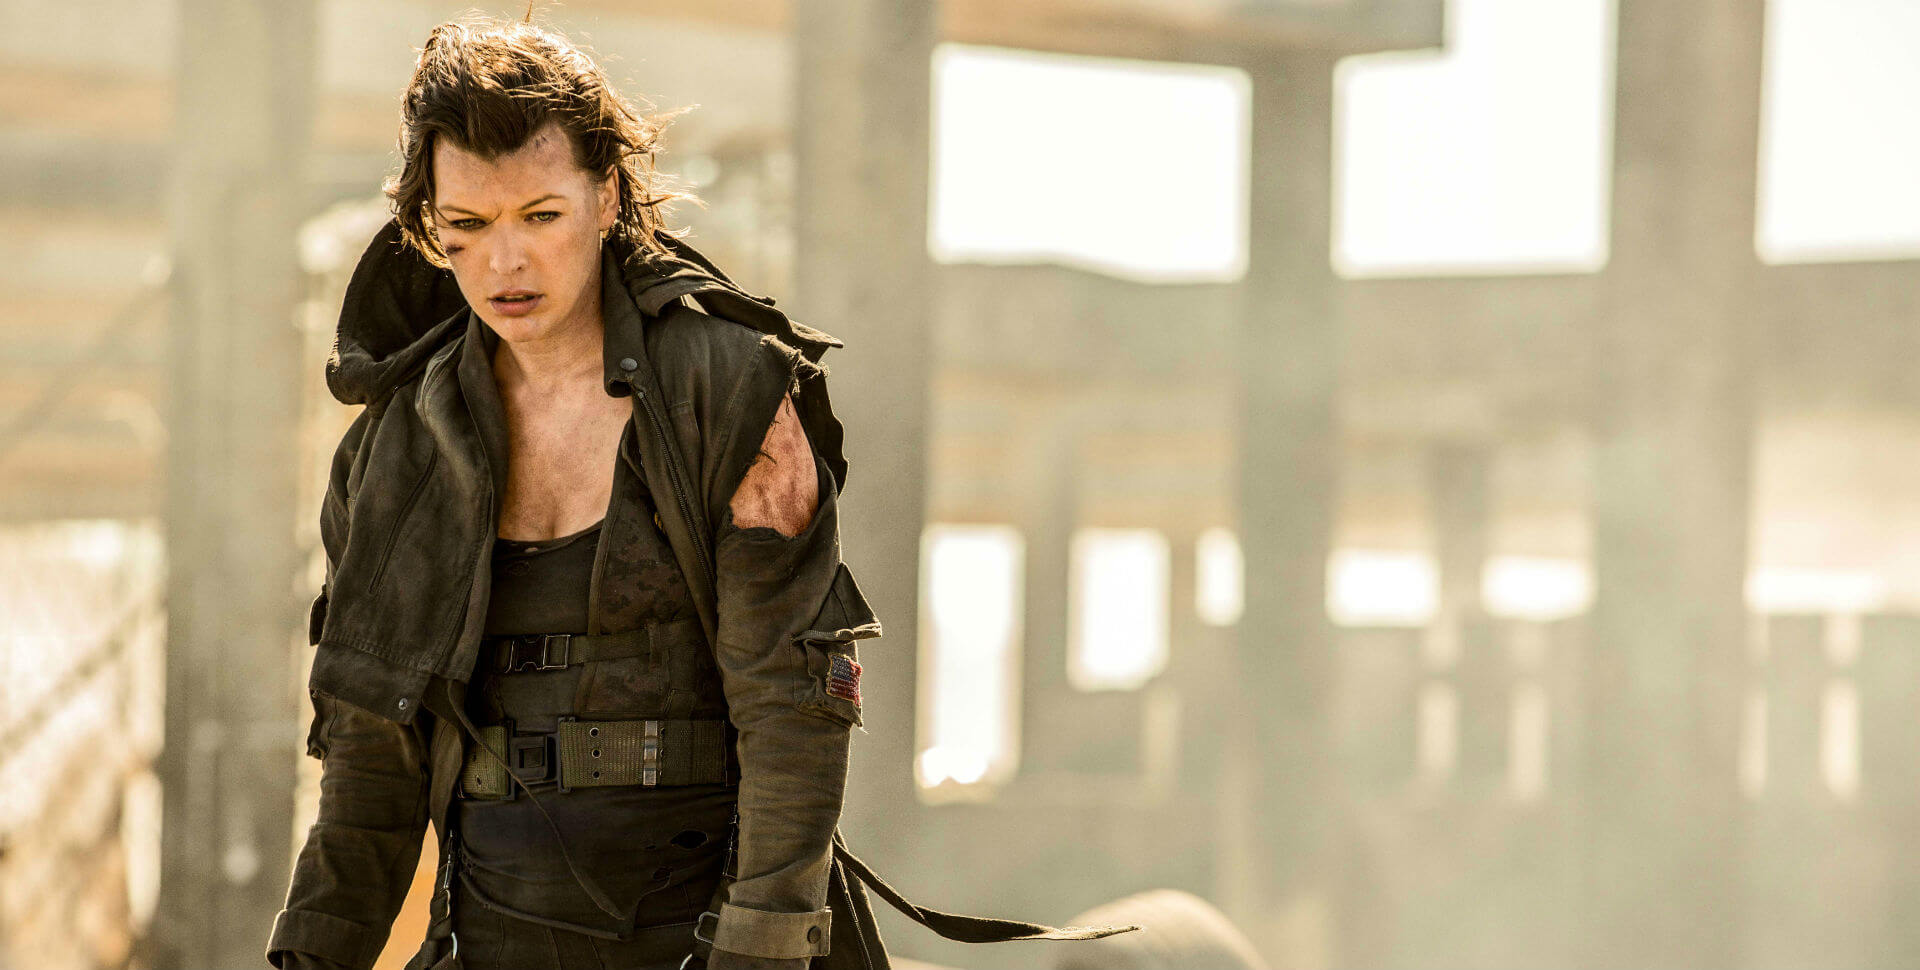 Resident Evil: The Final Chapter [2016] Spoiler Free Movie Review